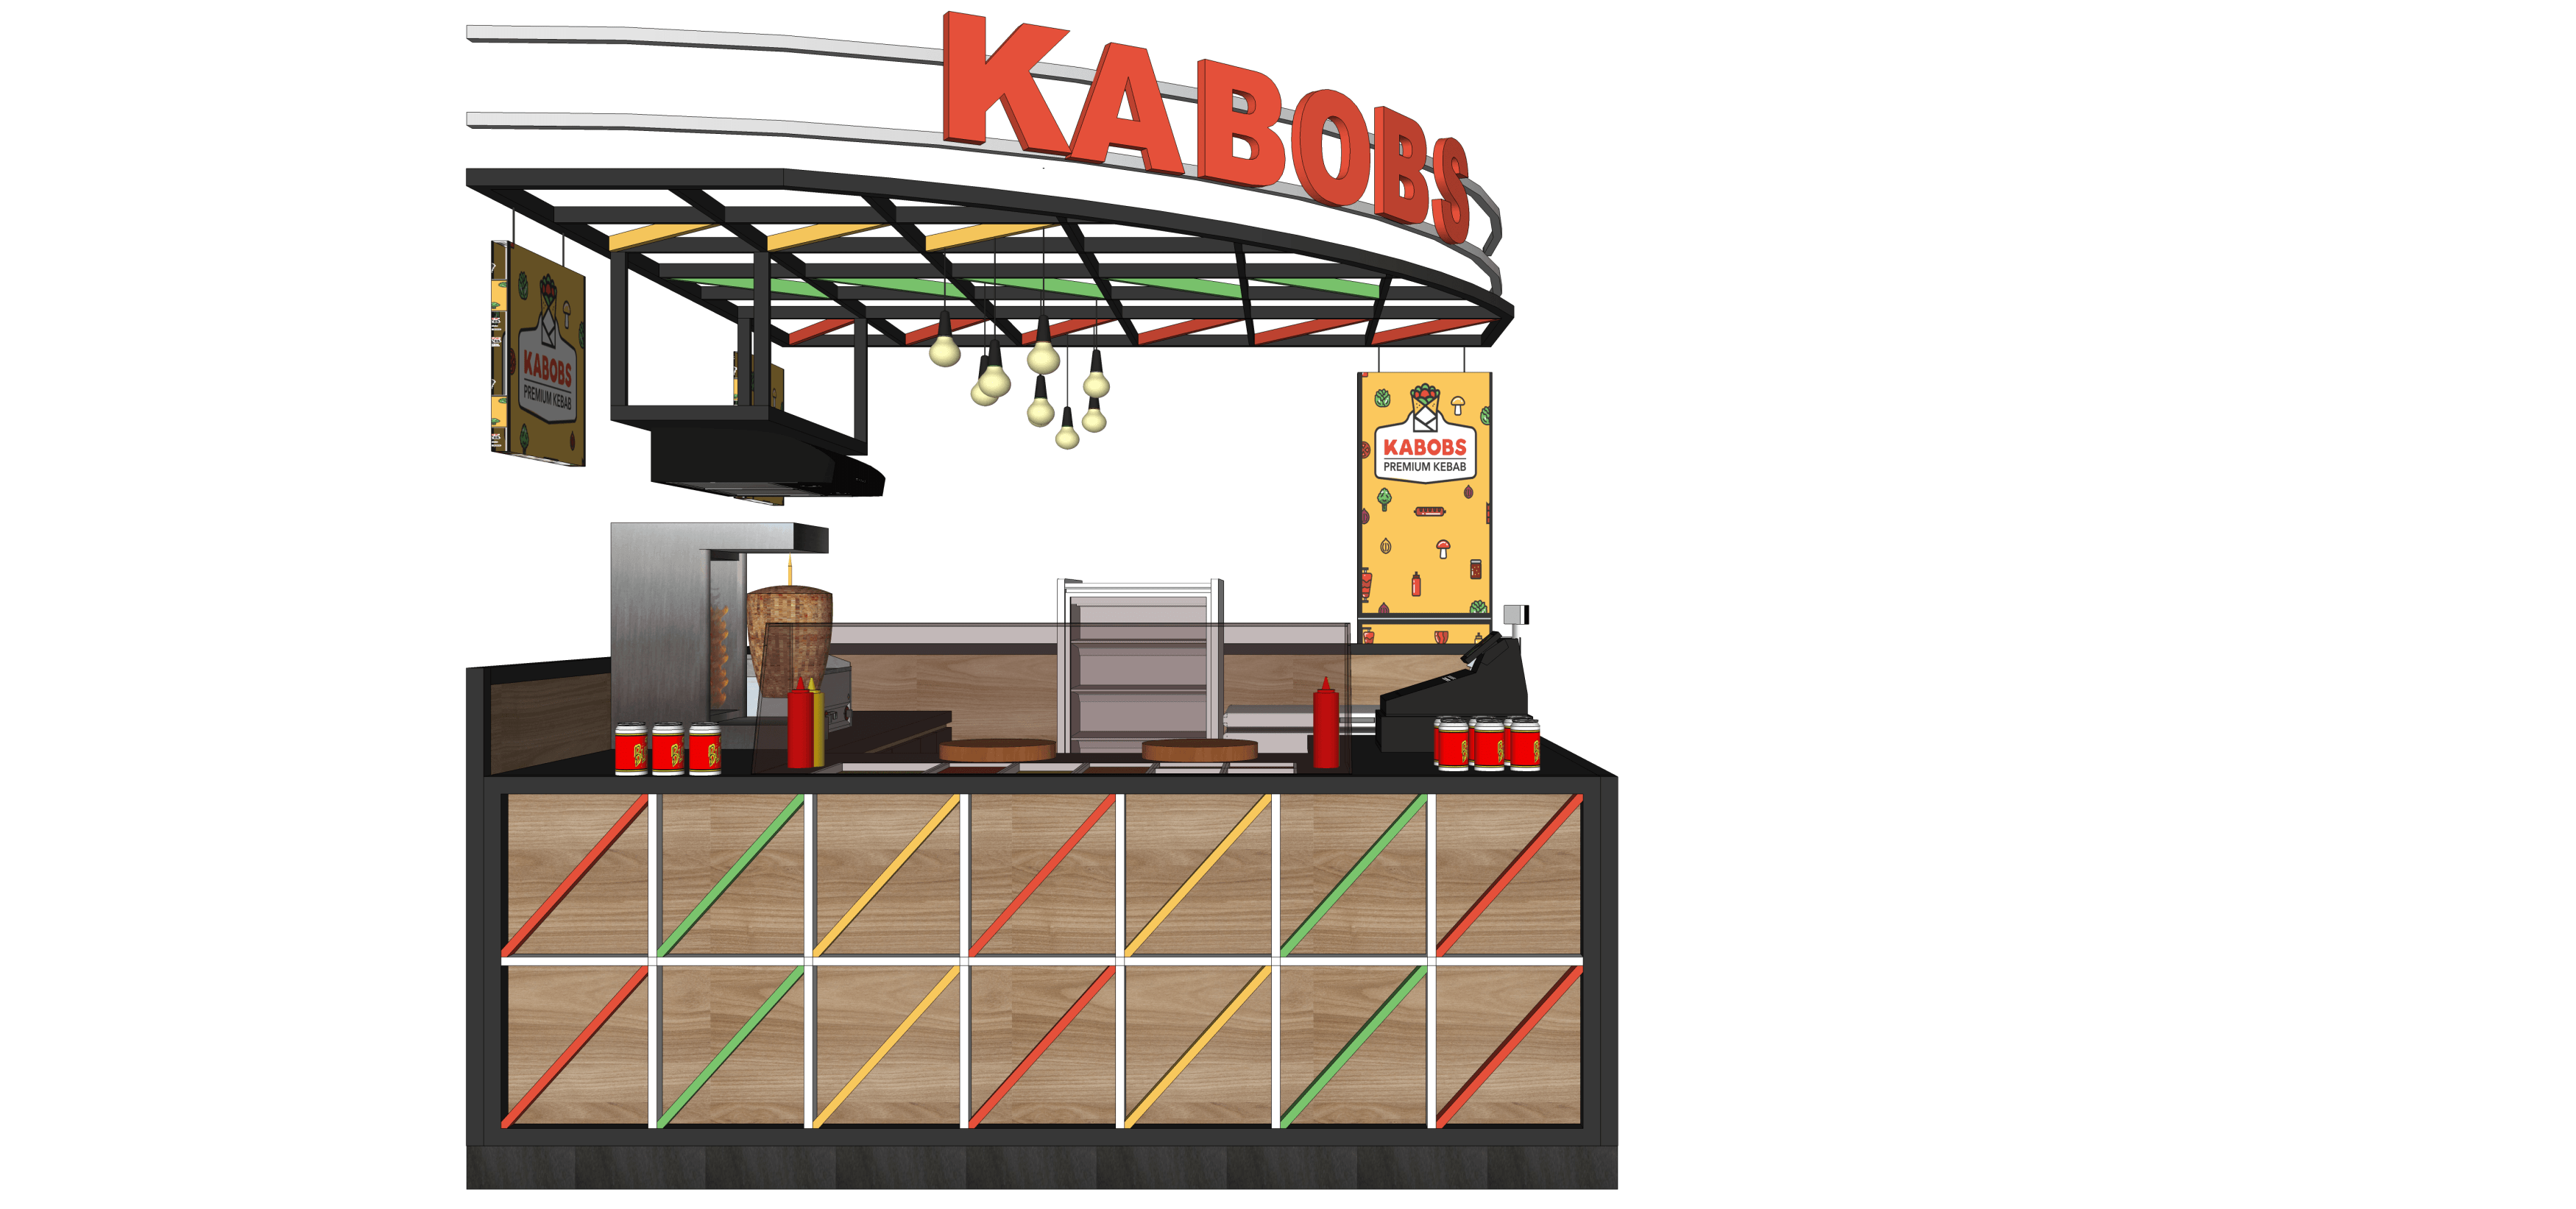 Virr Studio Kabob Premium Kebab Bandung Indah Plaza Citarum, Bandung Wetan, Bandung City, West Java 40117, Indonesia Citarum, Bandung Wetan, Bandung City, West Java 40117, Indonesia Kabobs-Booth-Design-New-02 Industrial,kontemporer,modern  36253